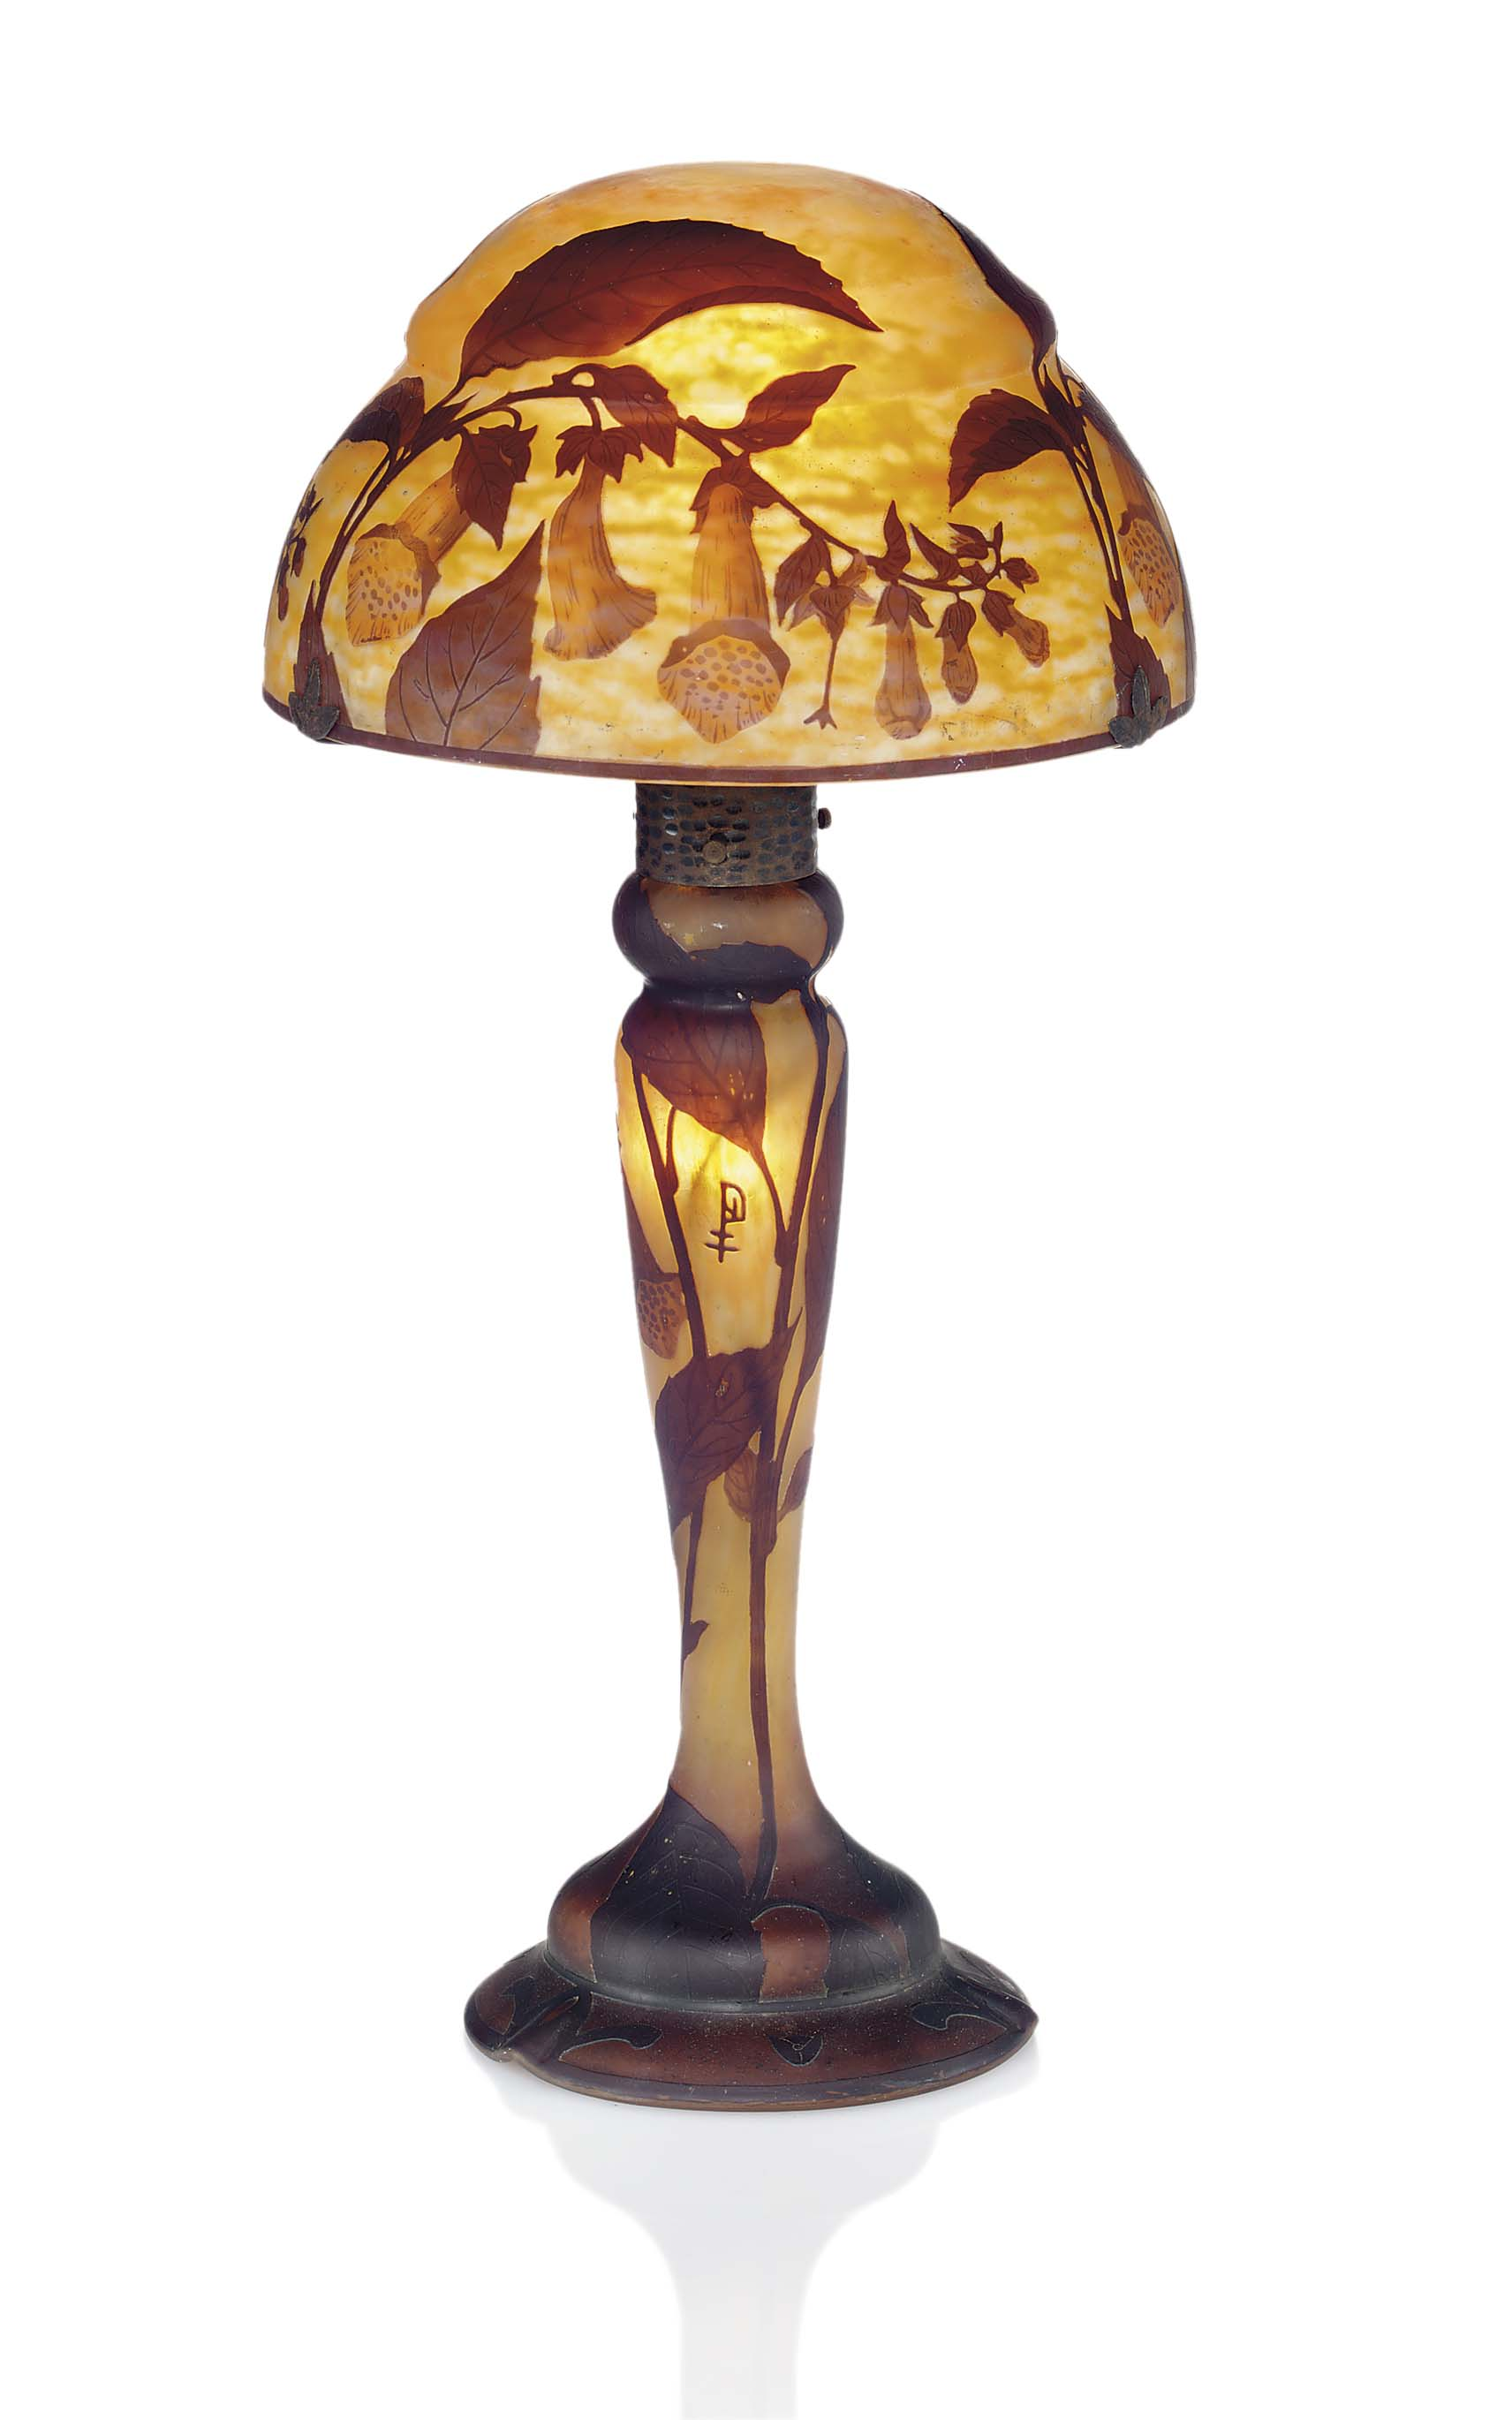 nancy cameo glass table lamp for sale classifieds. Black Bedroom Furniture Sets. Home Design Ideas